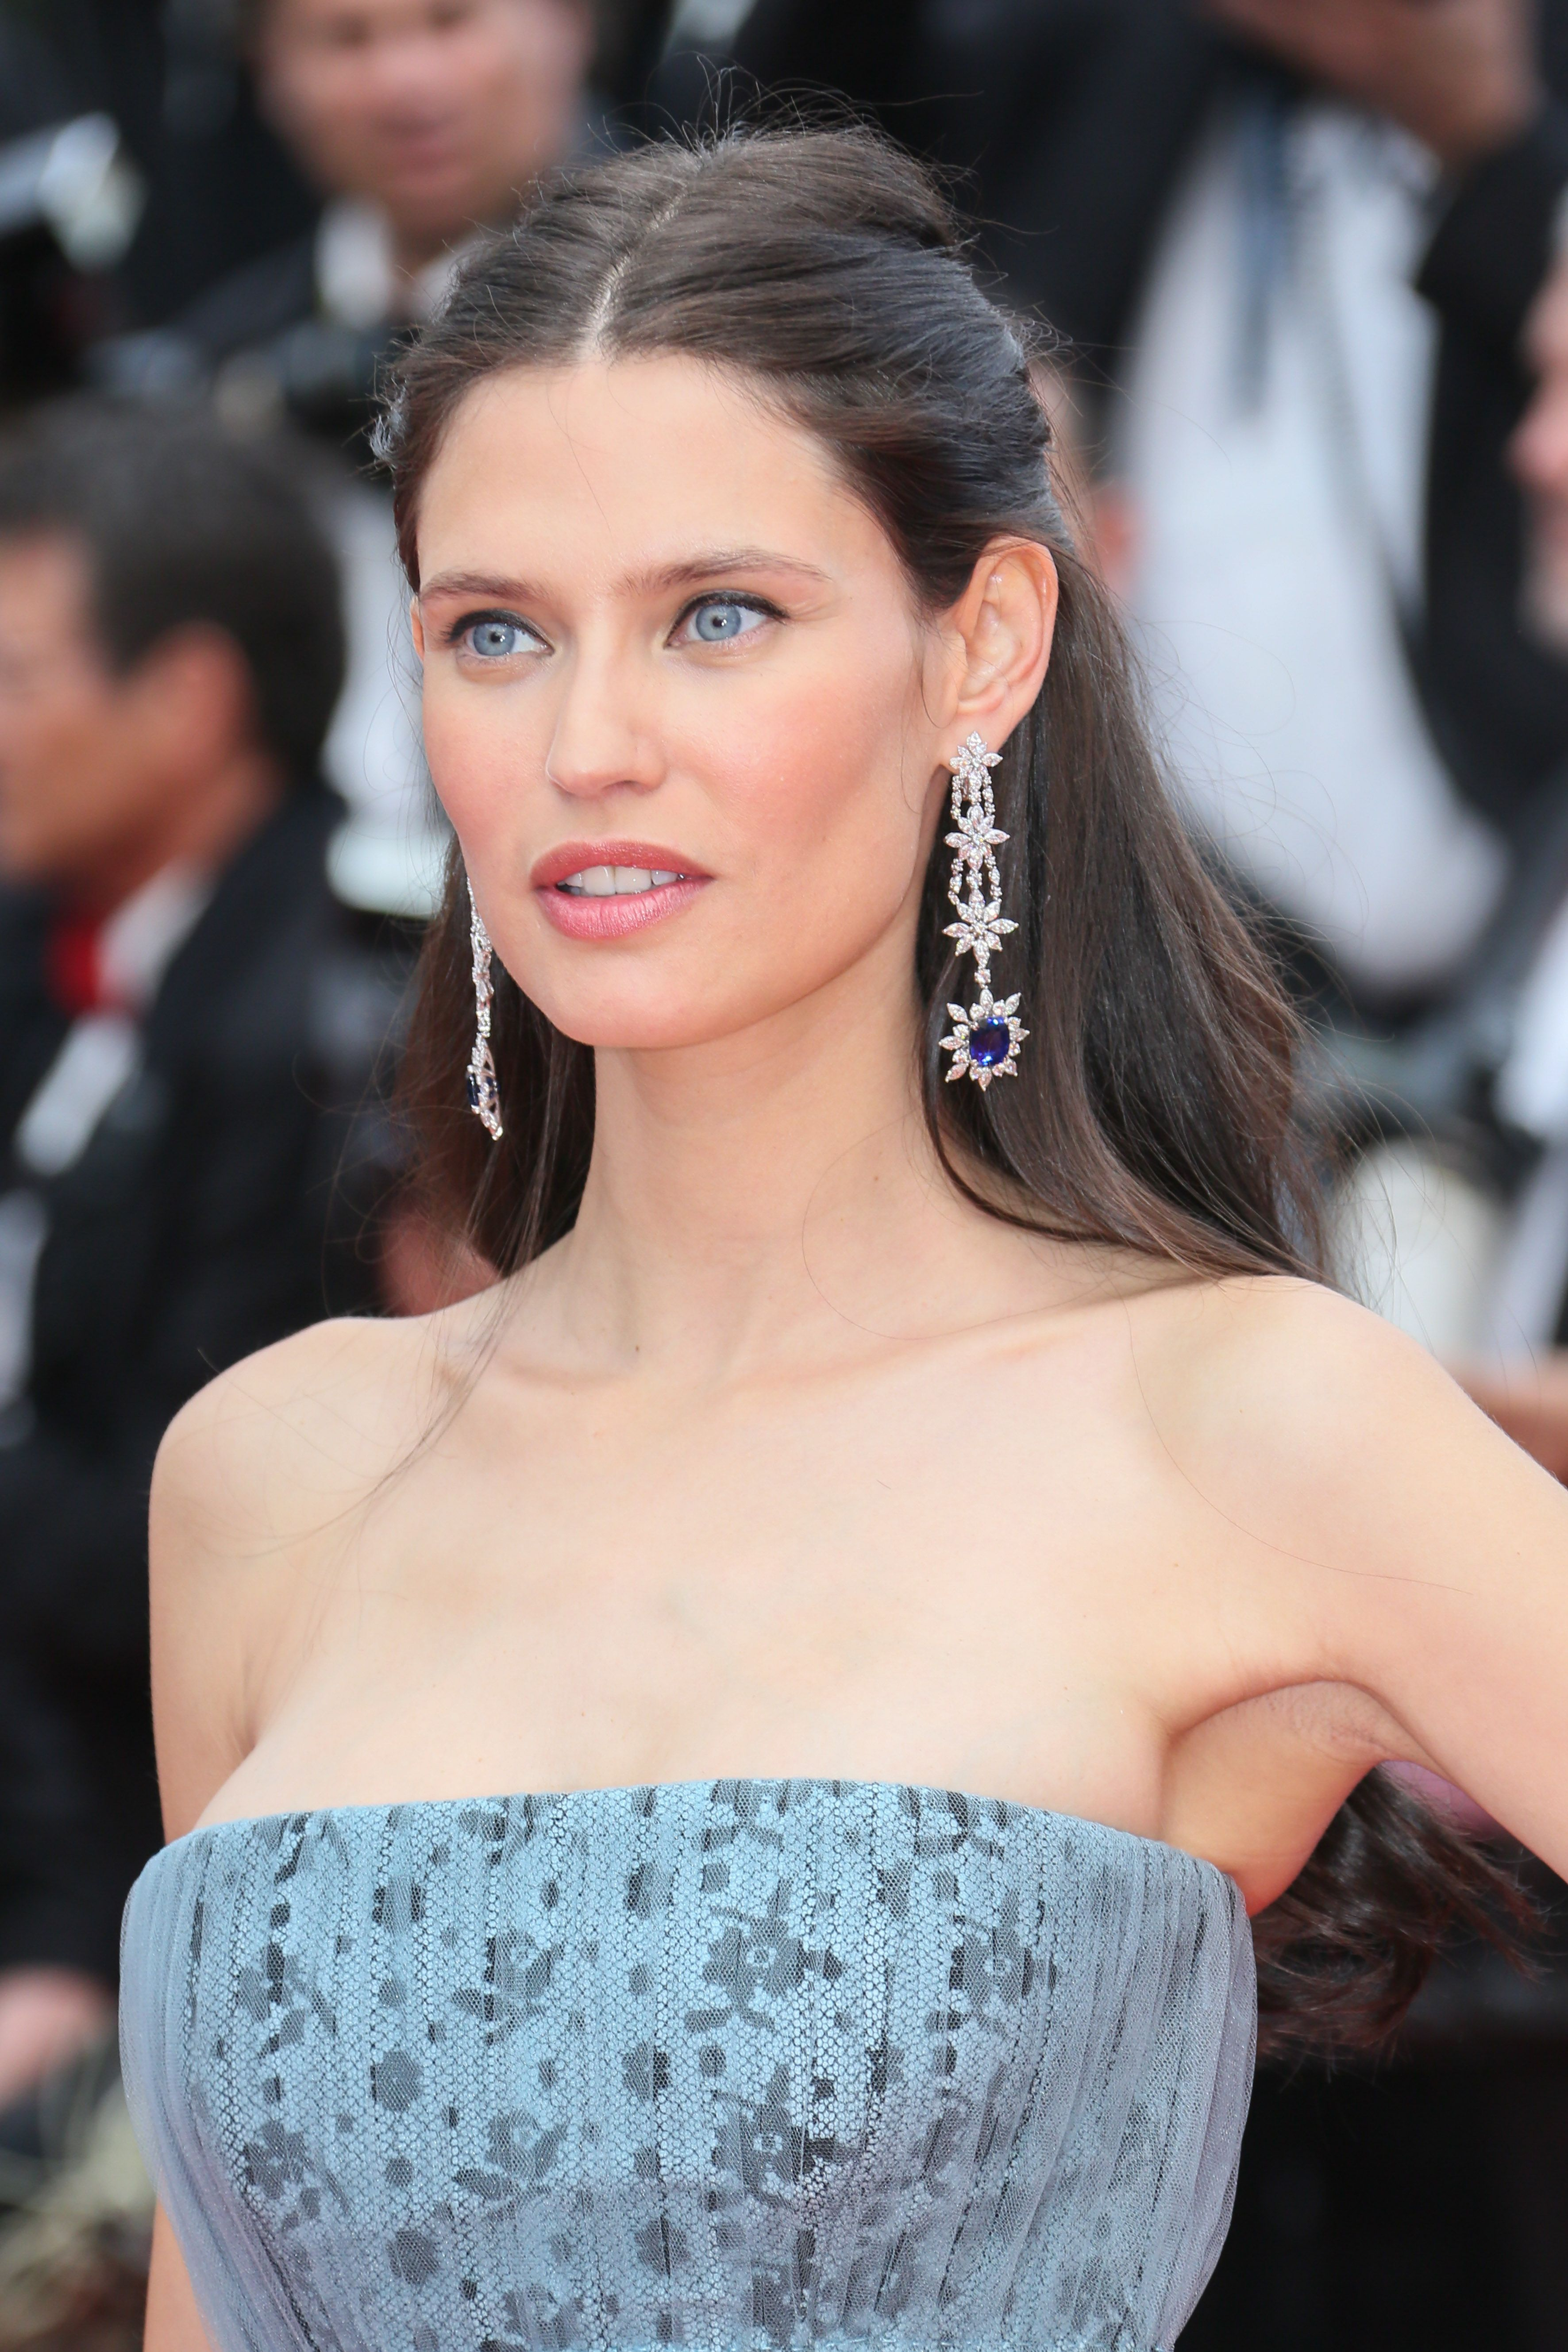 The Best of Beauty at the Cannes FilmFestival